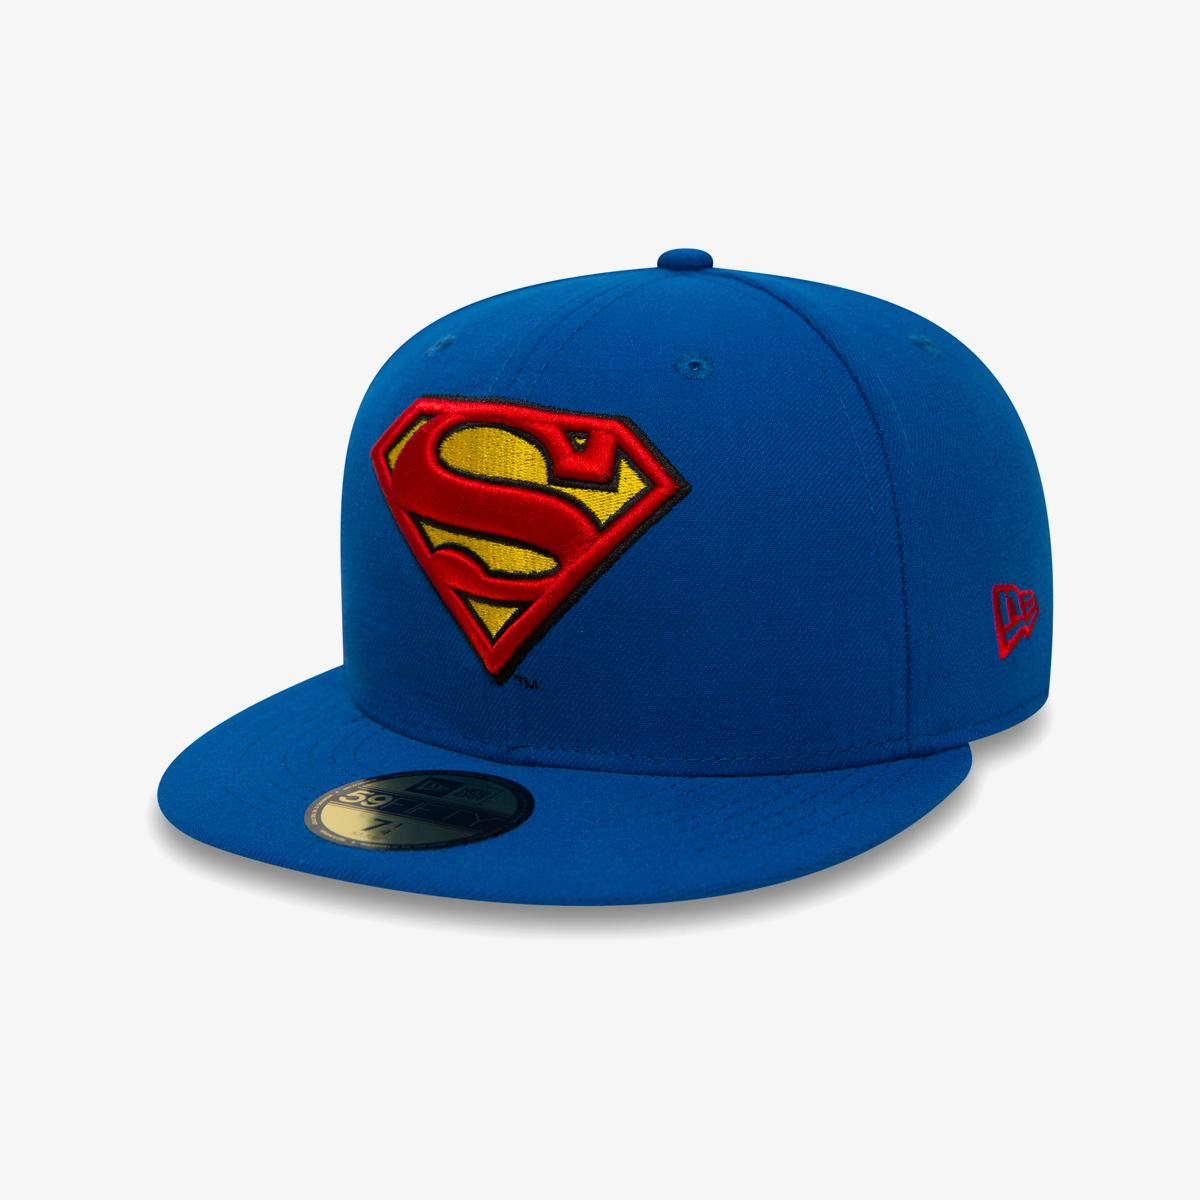 Бейсболка New Era CHARACTER BASIC SUPERMAN BLUE/RED/YELLOW COLOR BLUYEL SIZE 7 1/8